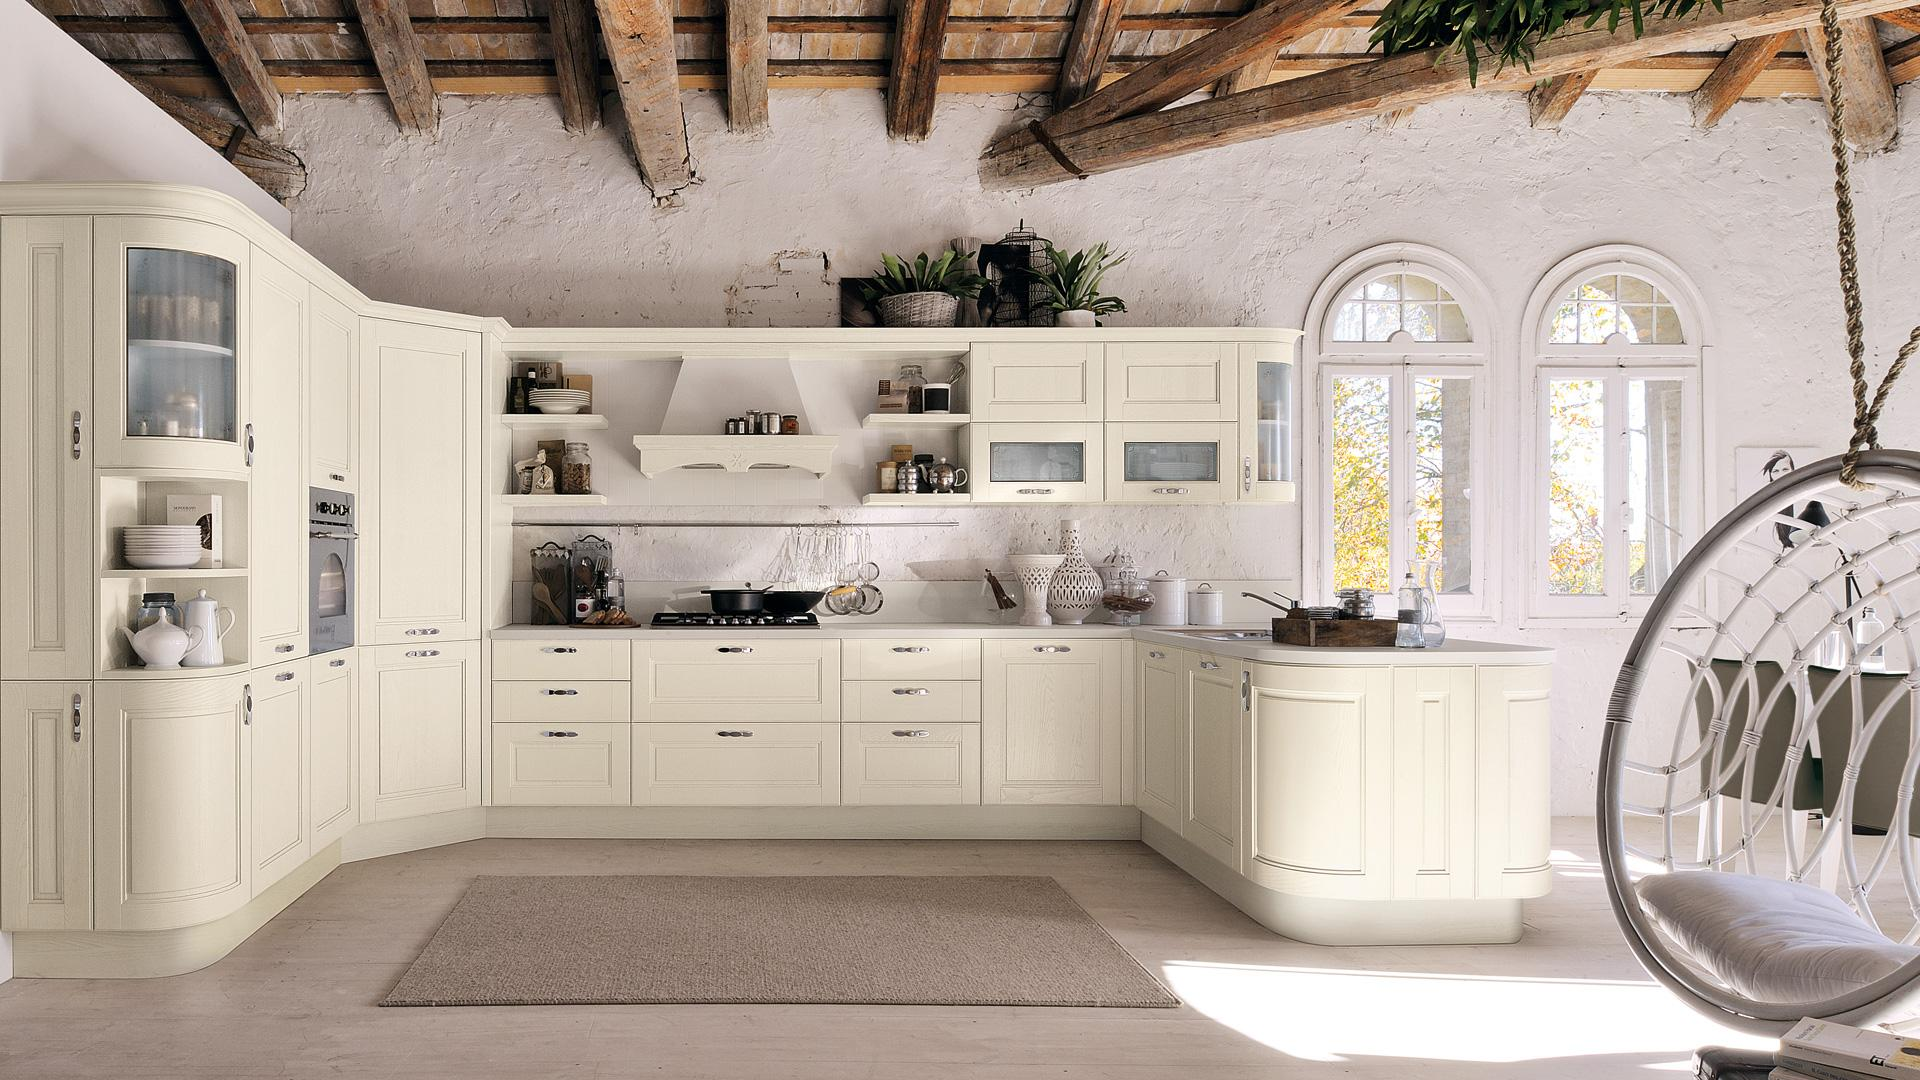 Cucine in stile provenzale, le idee country chic per chi ama ...